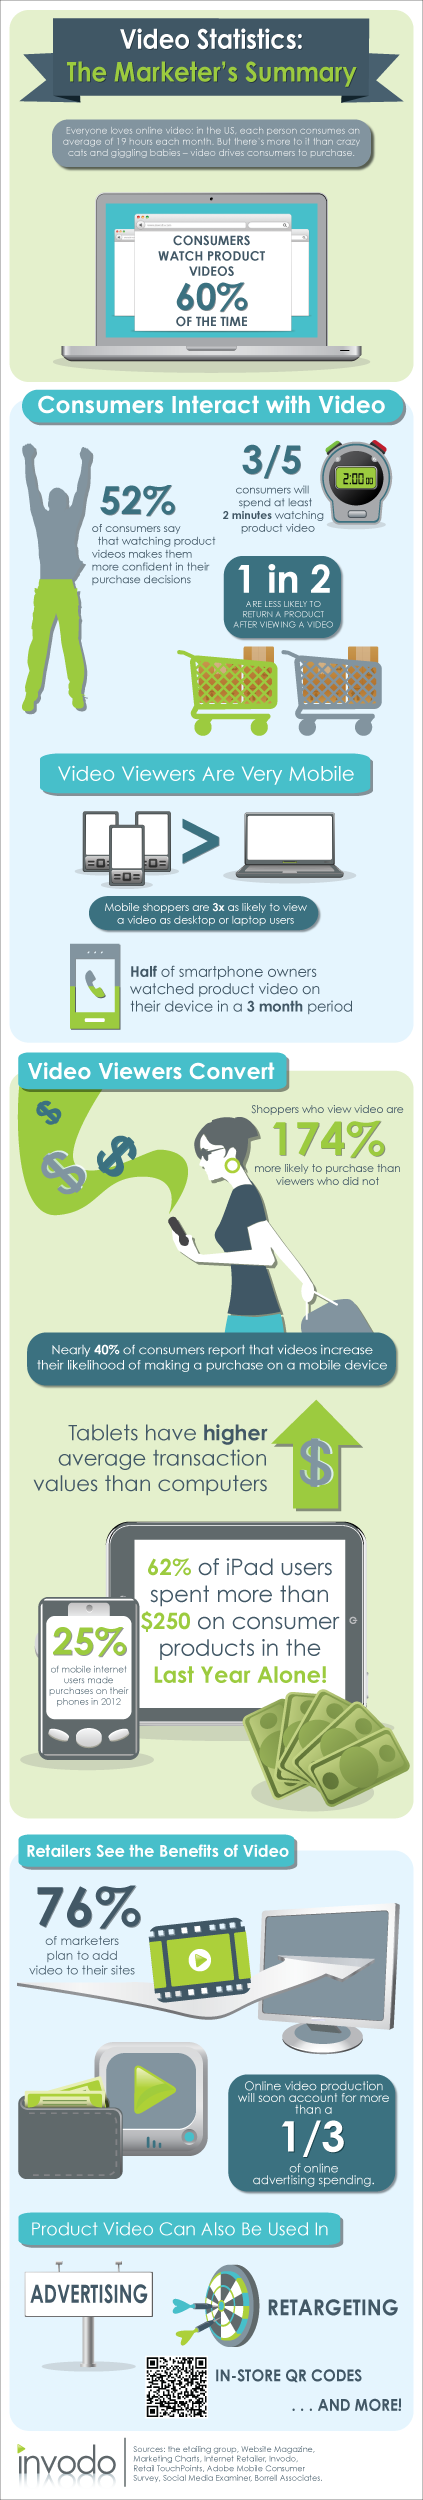 VideoStats_Infographic